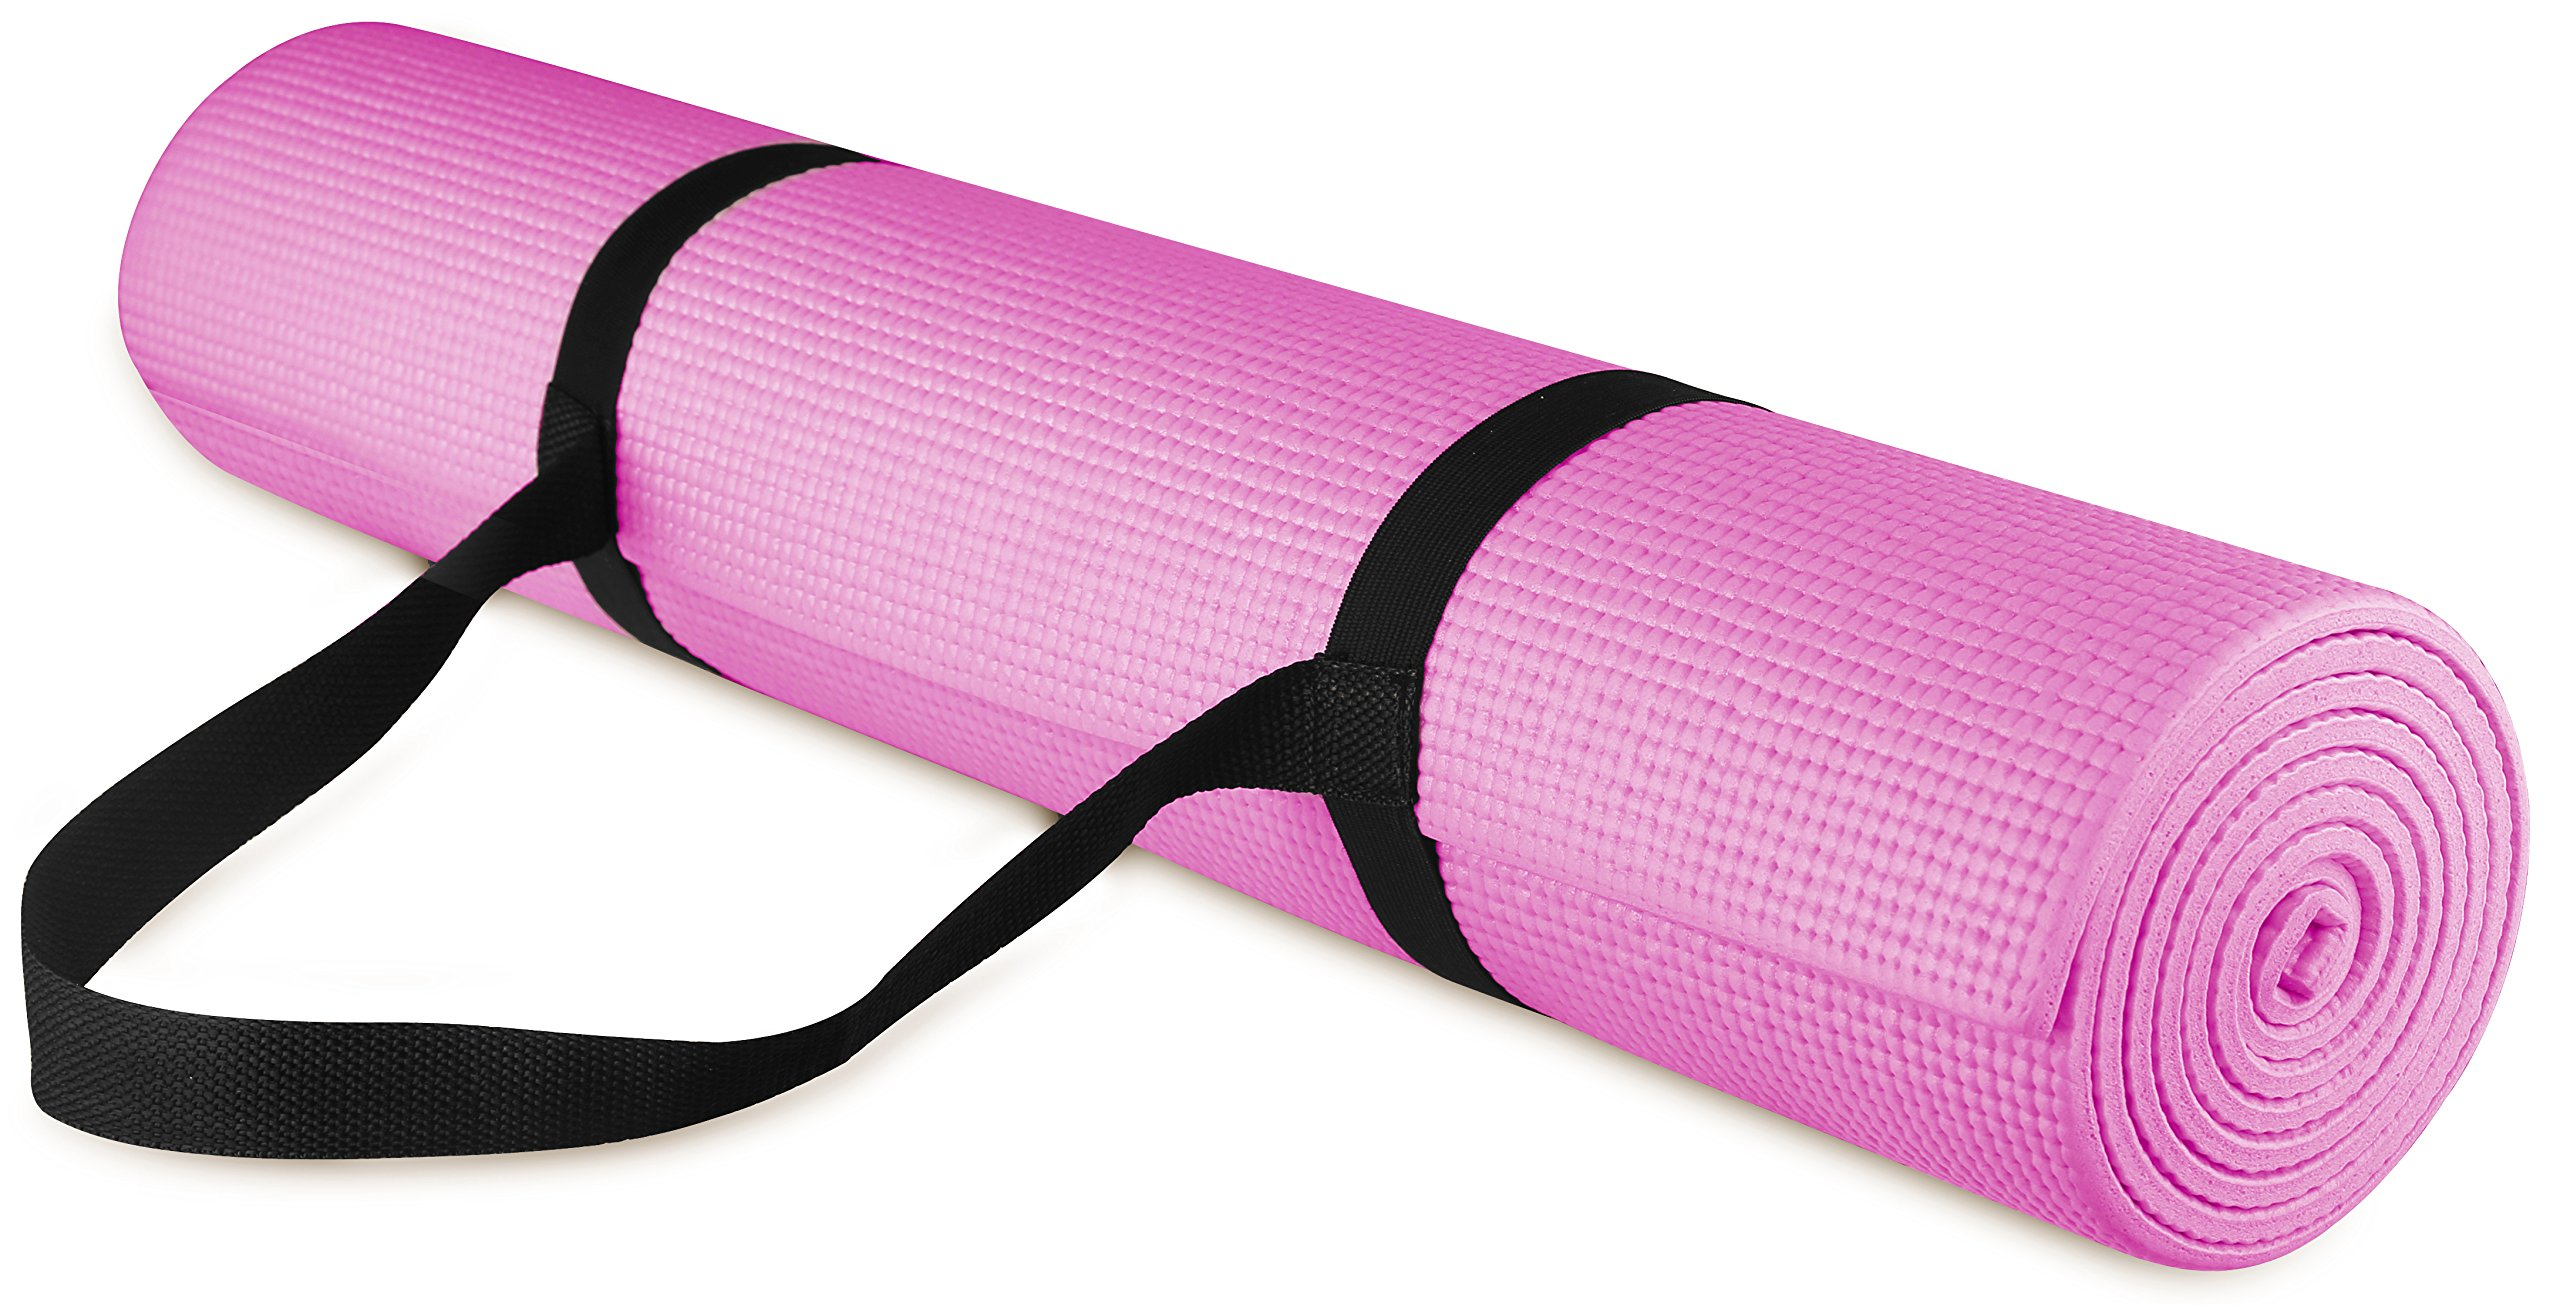 BalanceFrom GoYoga All Purpose High Density Non-Slip Exercise Yoga Mat with Carrying Strap, 1/4'', Pink by BalanceFrom